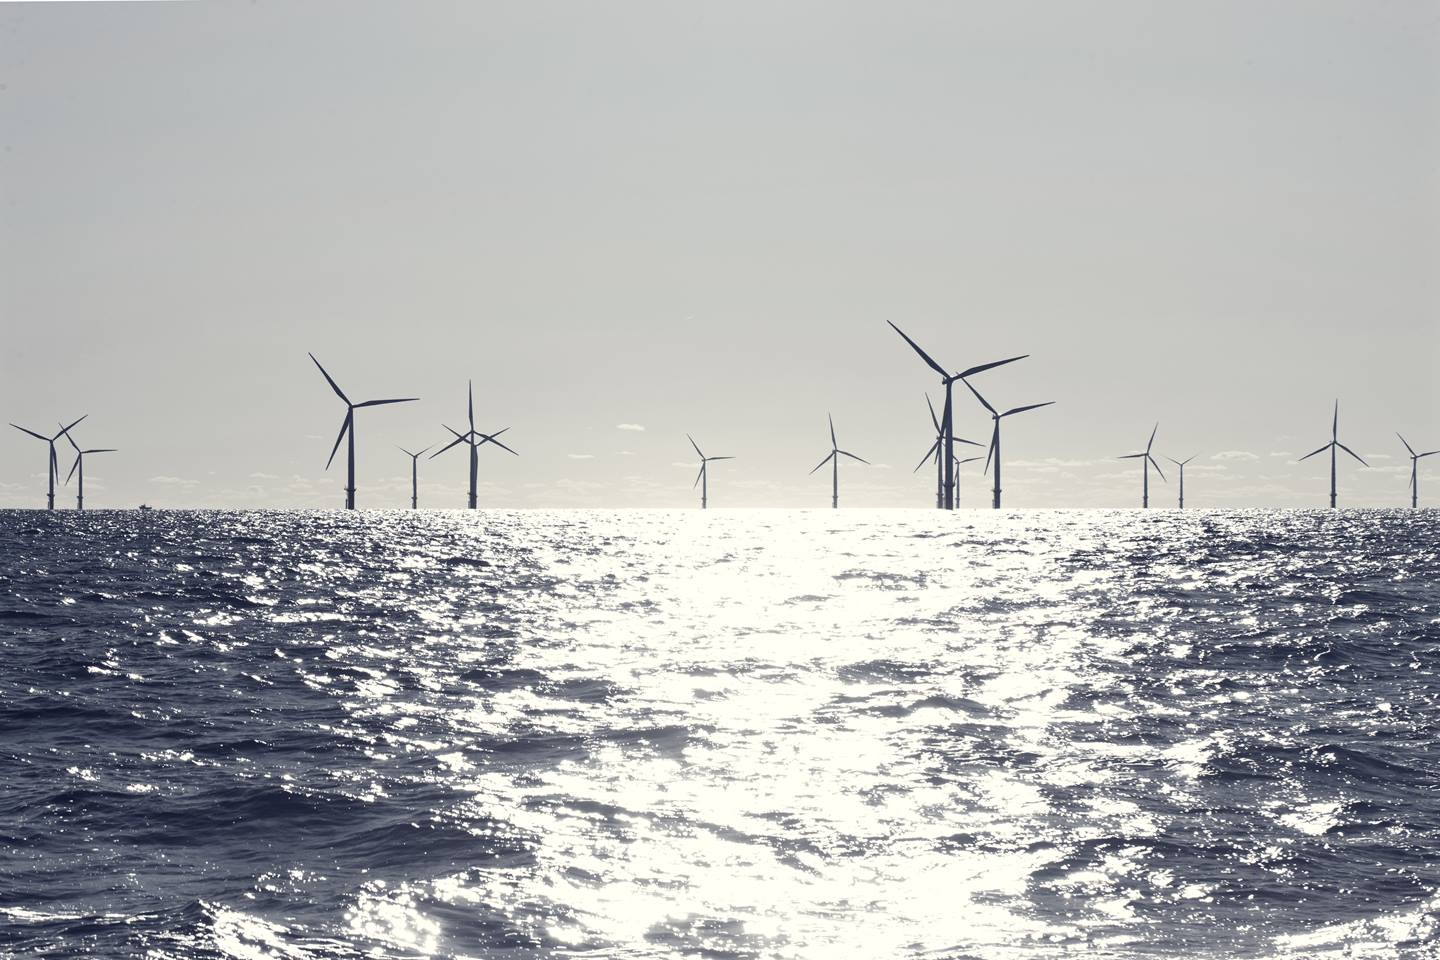 Wind Turbines at Sea Reach 5 Per Cent of Total Wind Energy Capacity